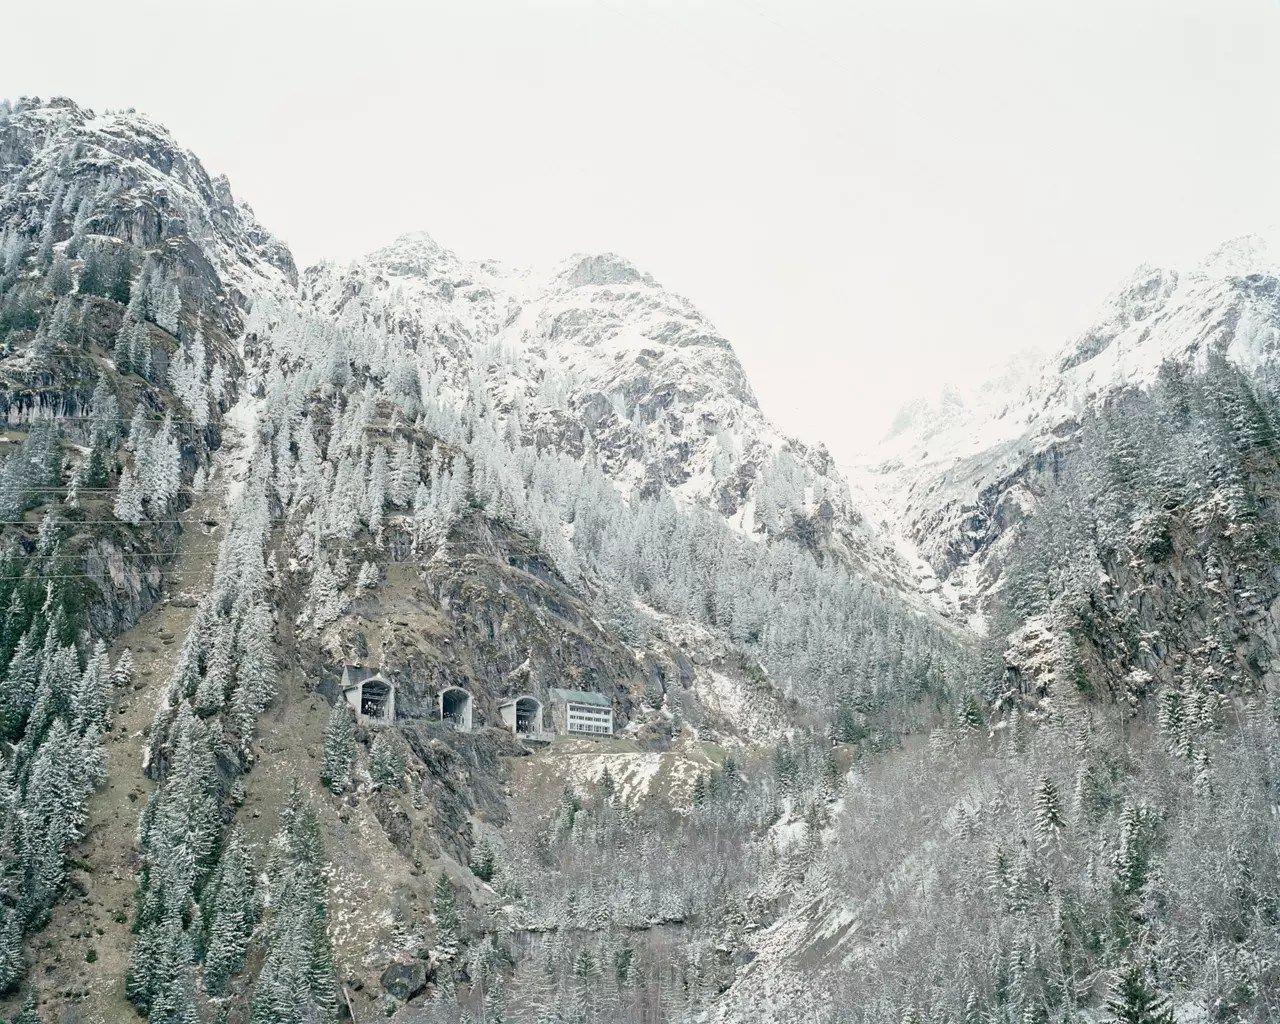 Chloe Dewe Mathews goes In Search of Frankenstein in the Swiss Alps     Chloe Dewe Mathews goes In Search of Frankenstein in the Swiss Alps      British Journal of Photography